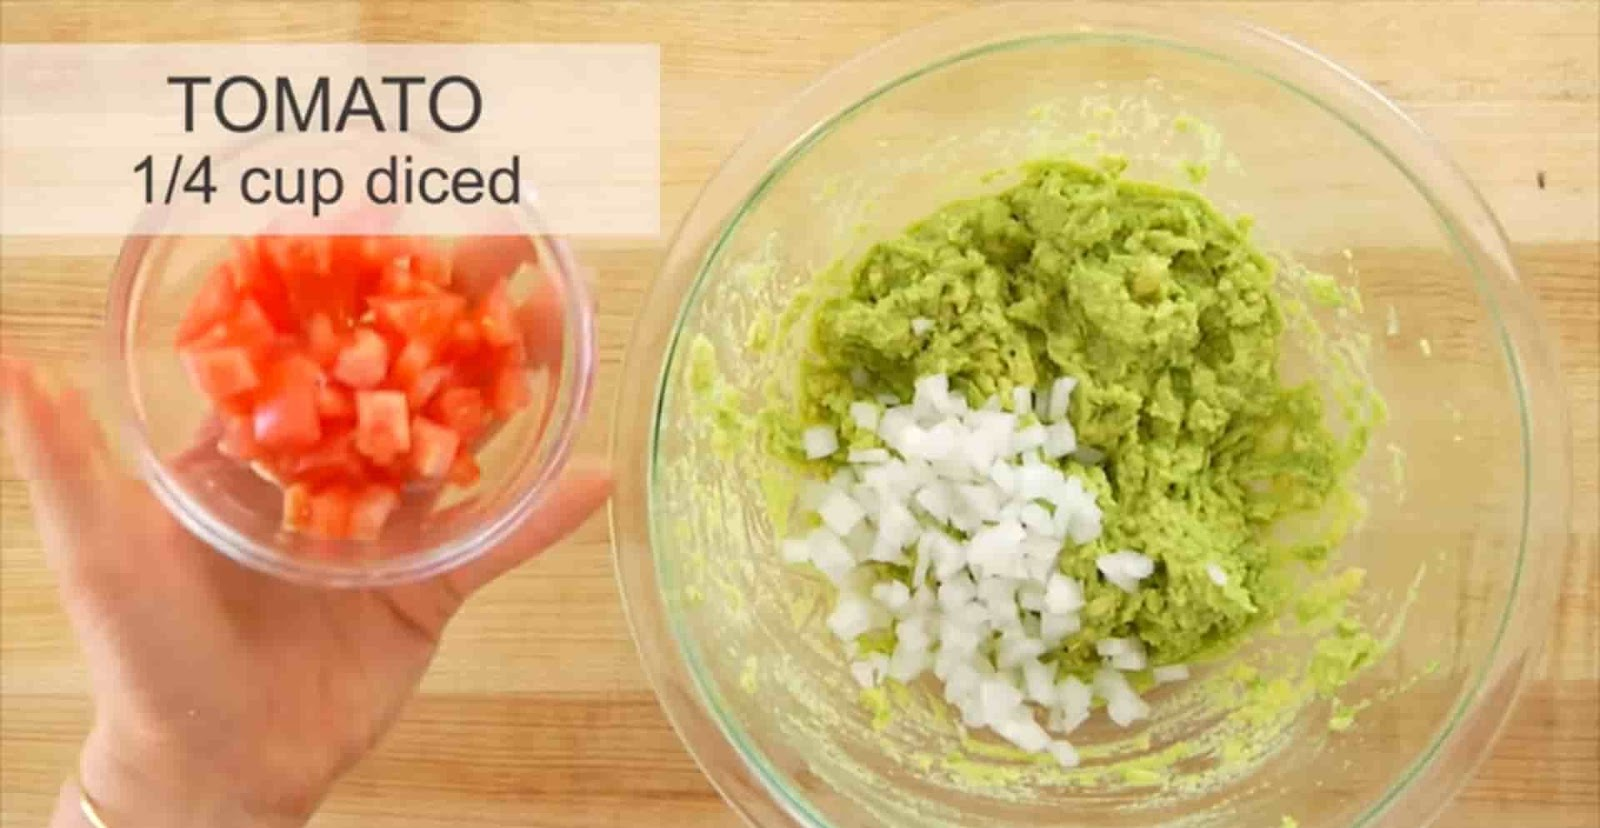 Tomato-diced-putting-in-mashed-avocado